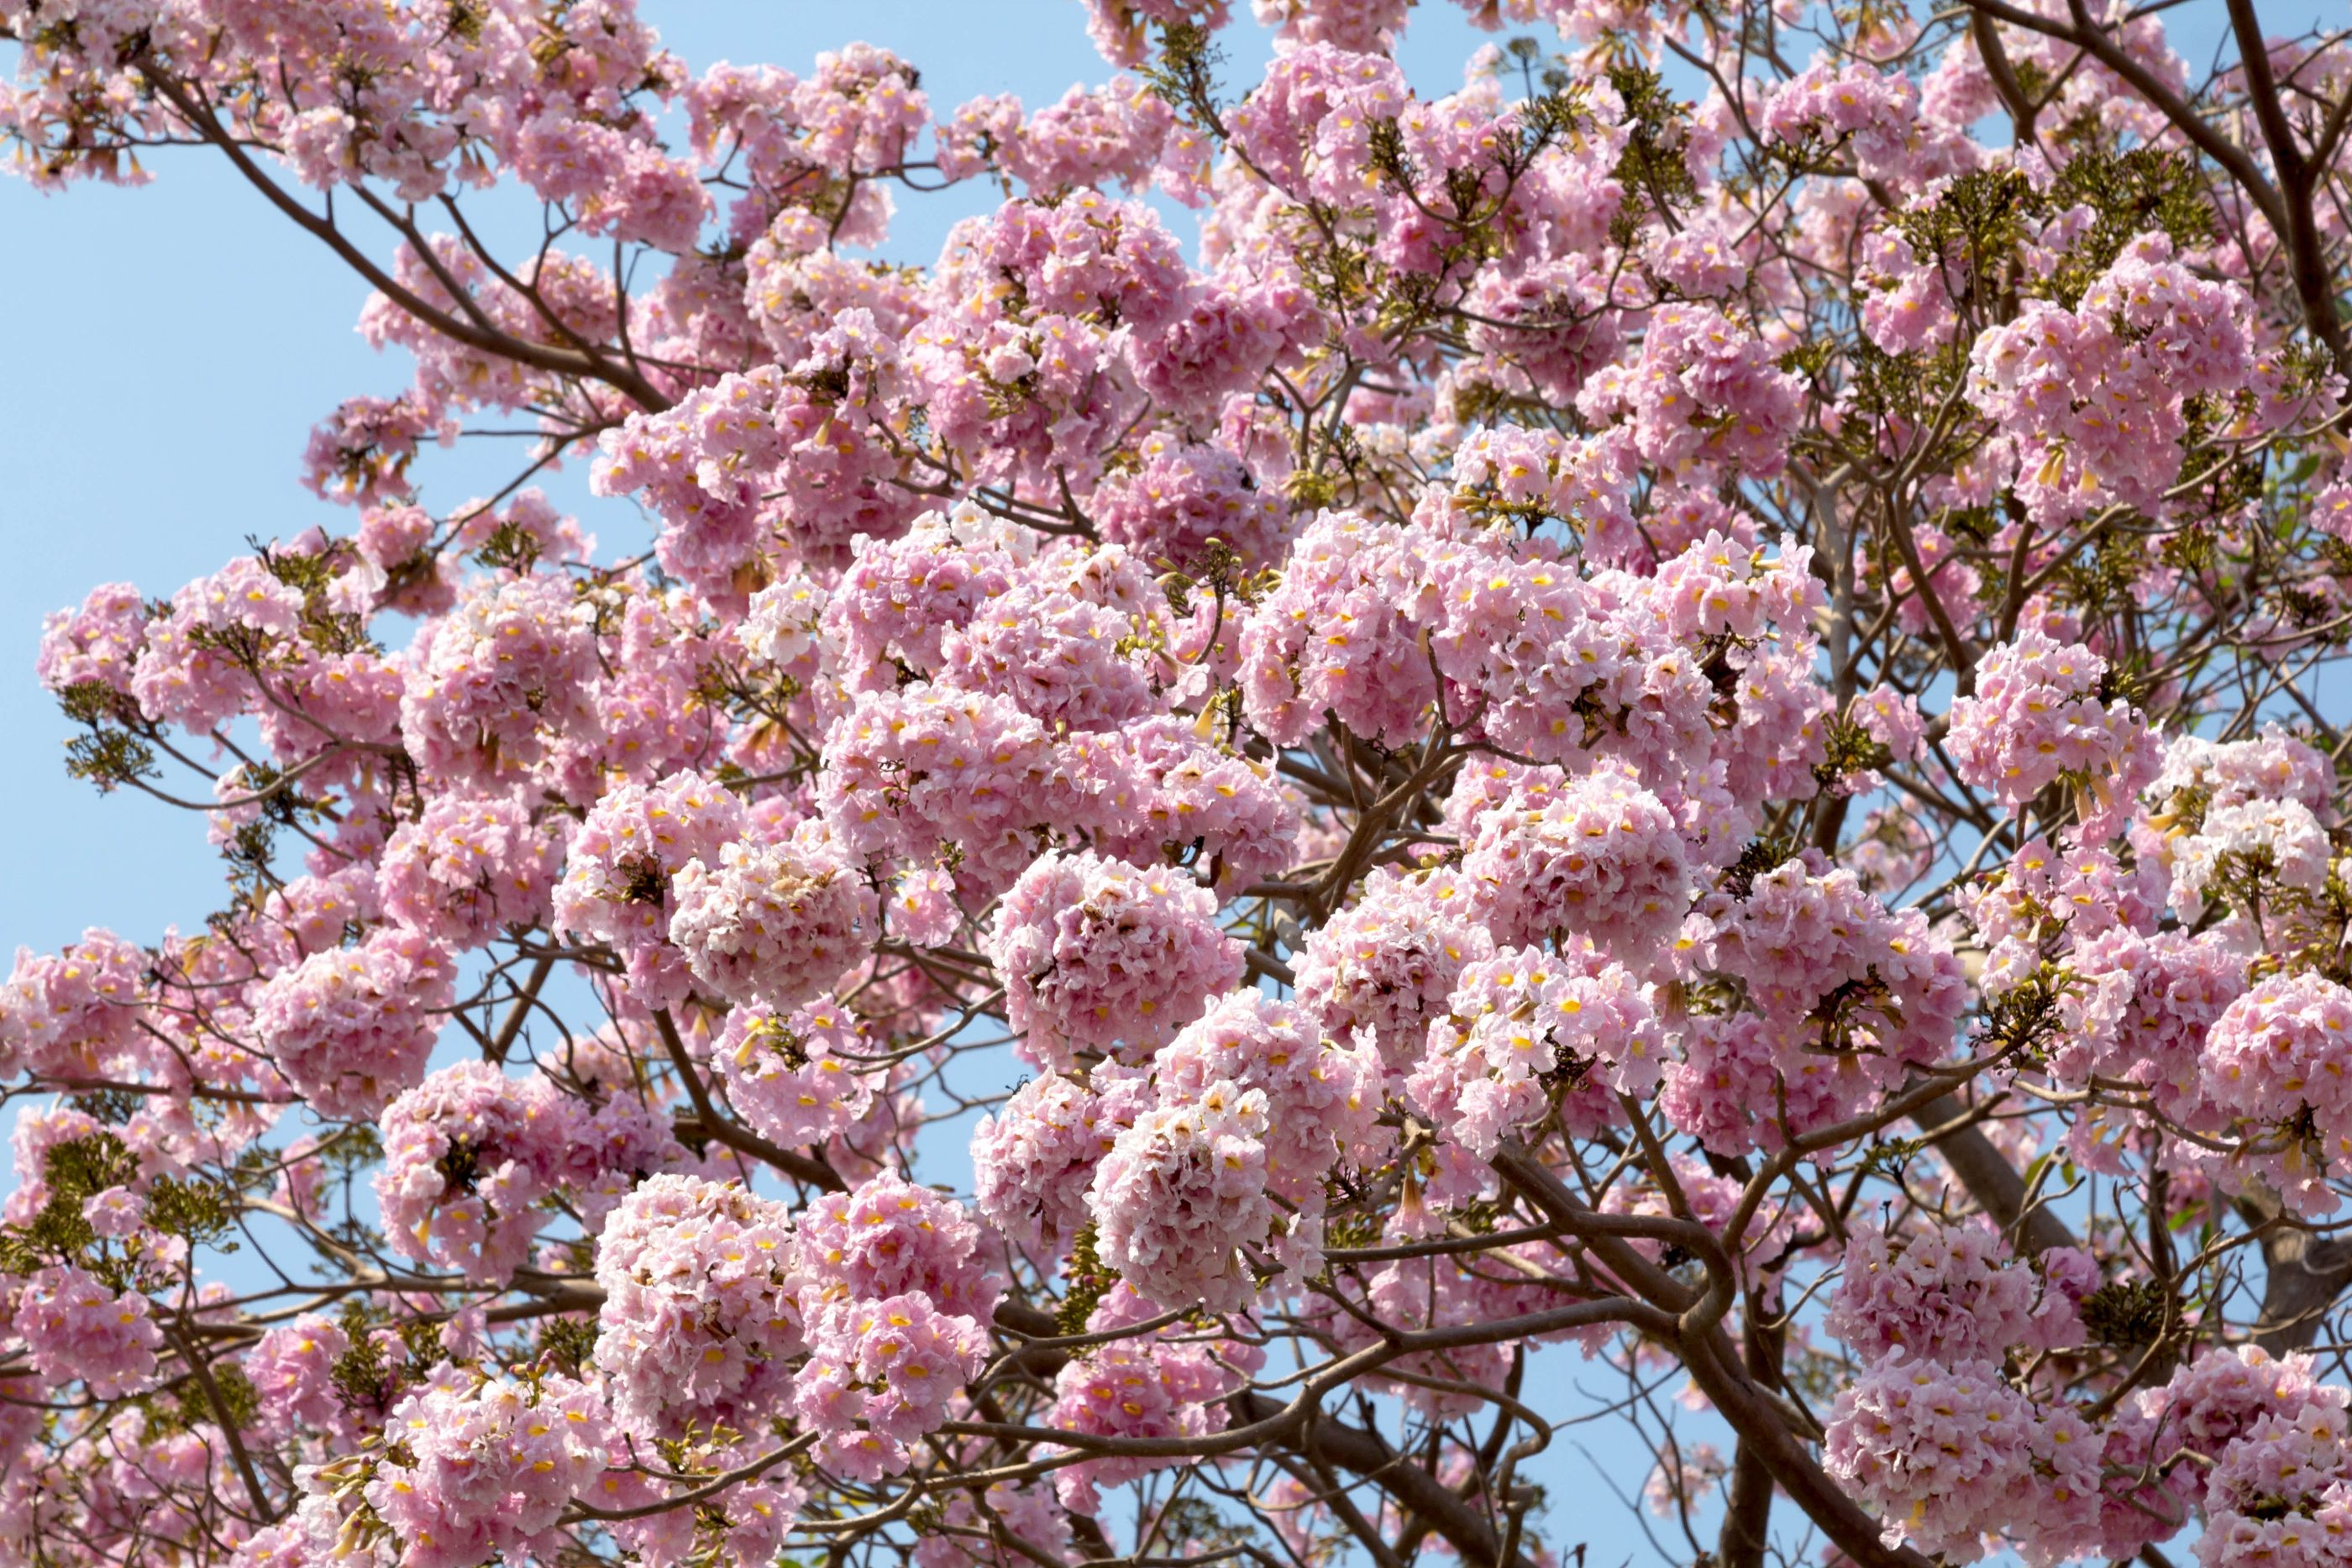 Tabeaubia In Bangalore Cherry Blossom In Japan And In Washington Dc They Light Up Your Drive With Their Sudden Bur Cherry Blossom Japan Cherry Blossom Plants